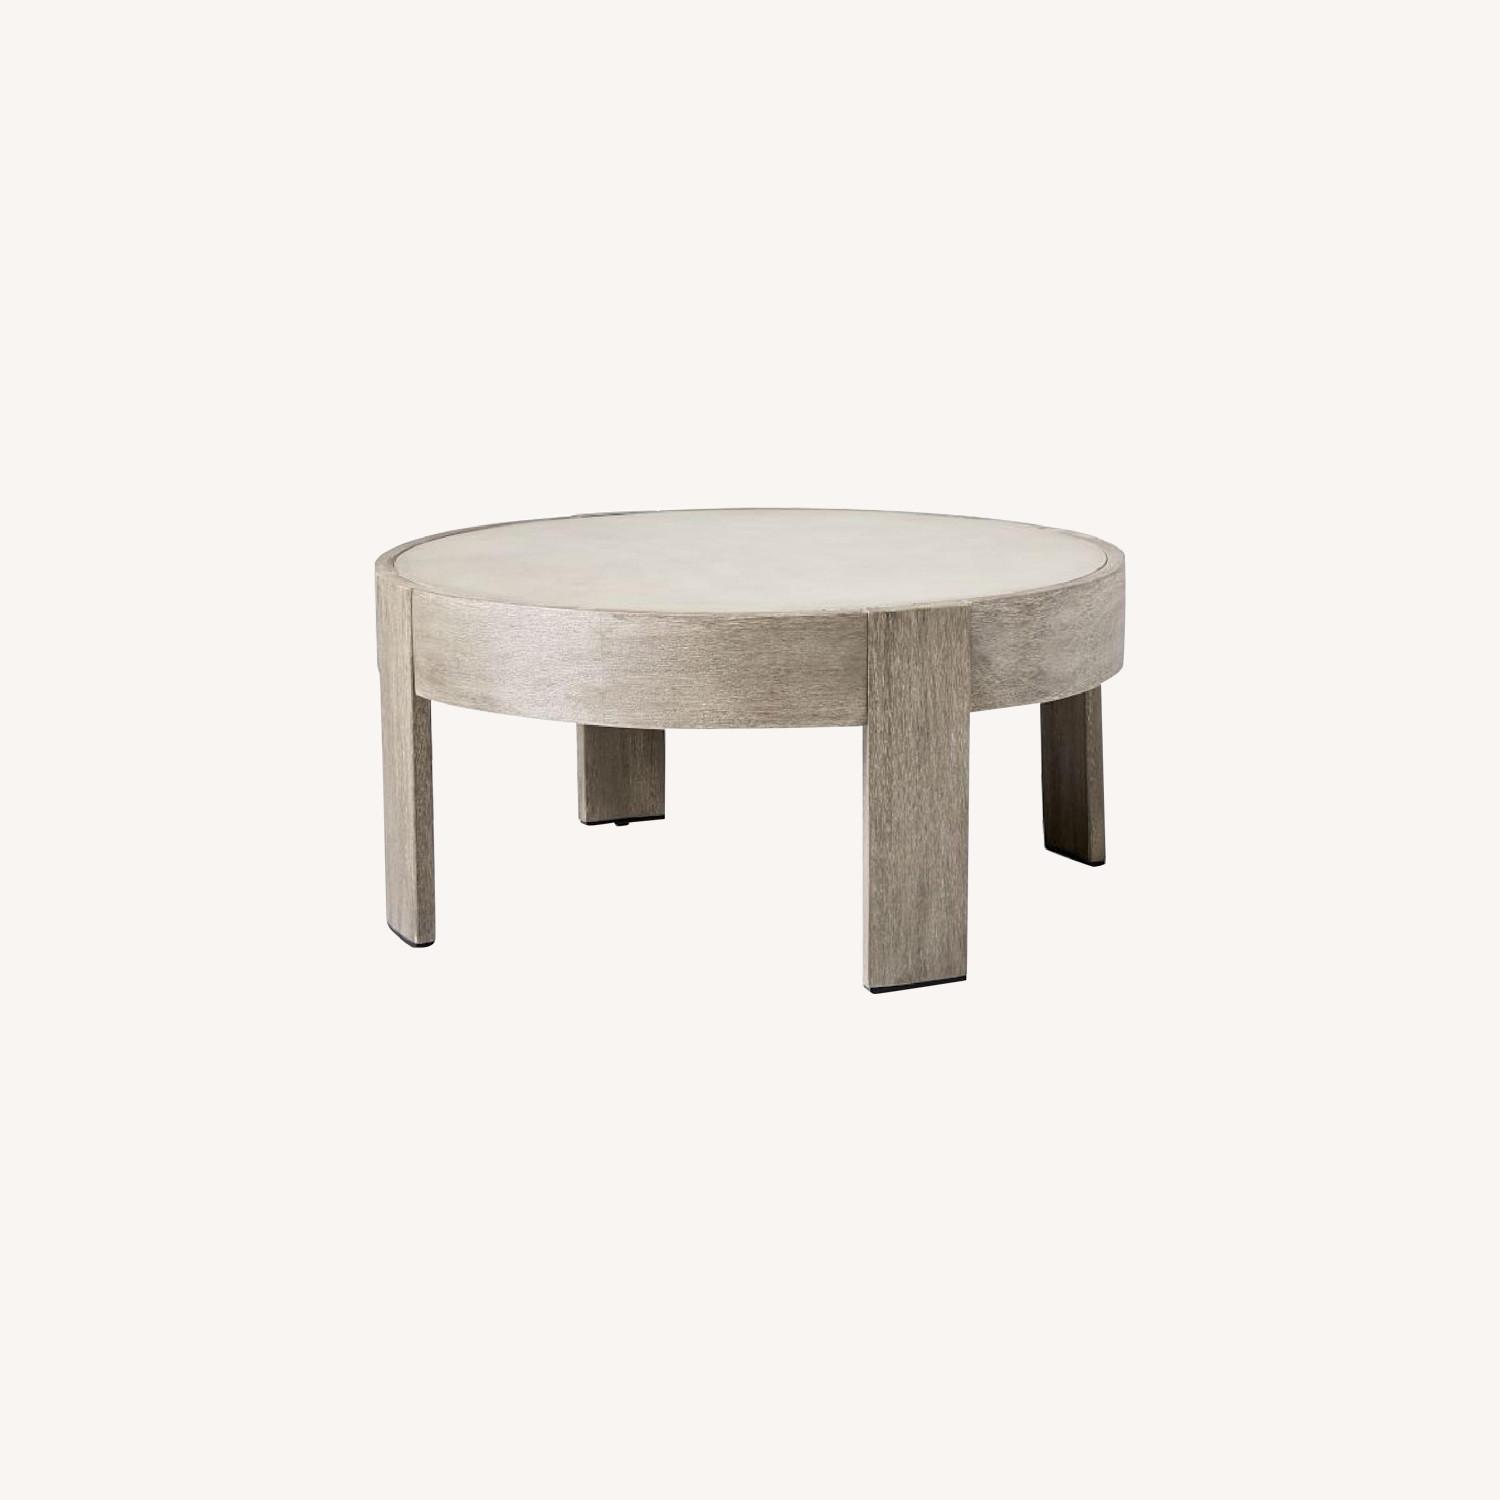 West Elm Portside Outdoor Concrete Coffee Table - image-0